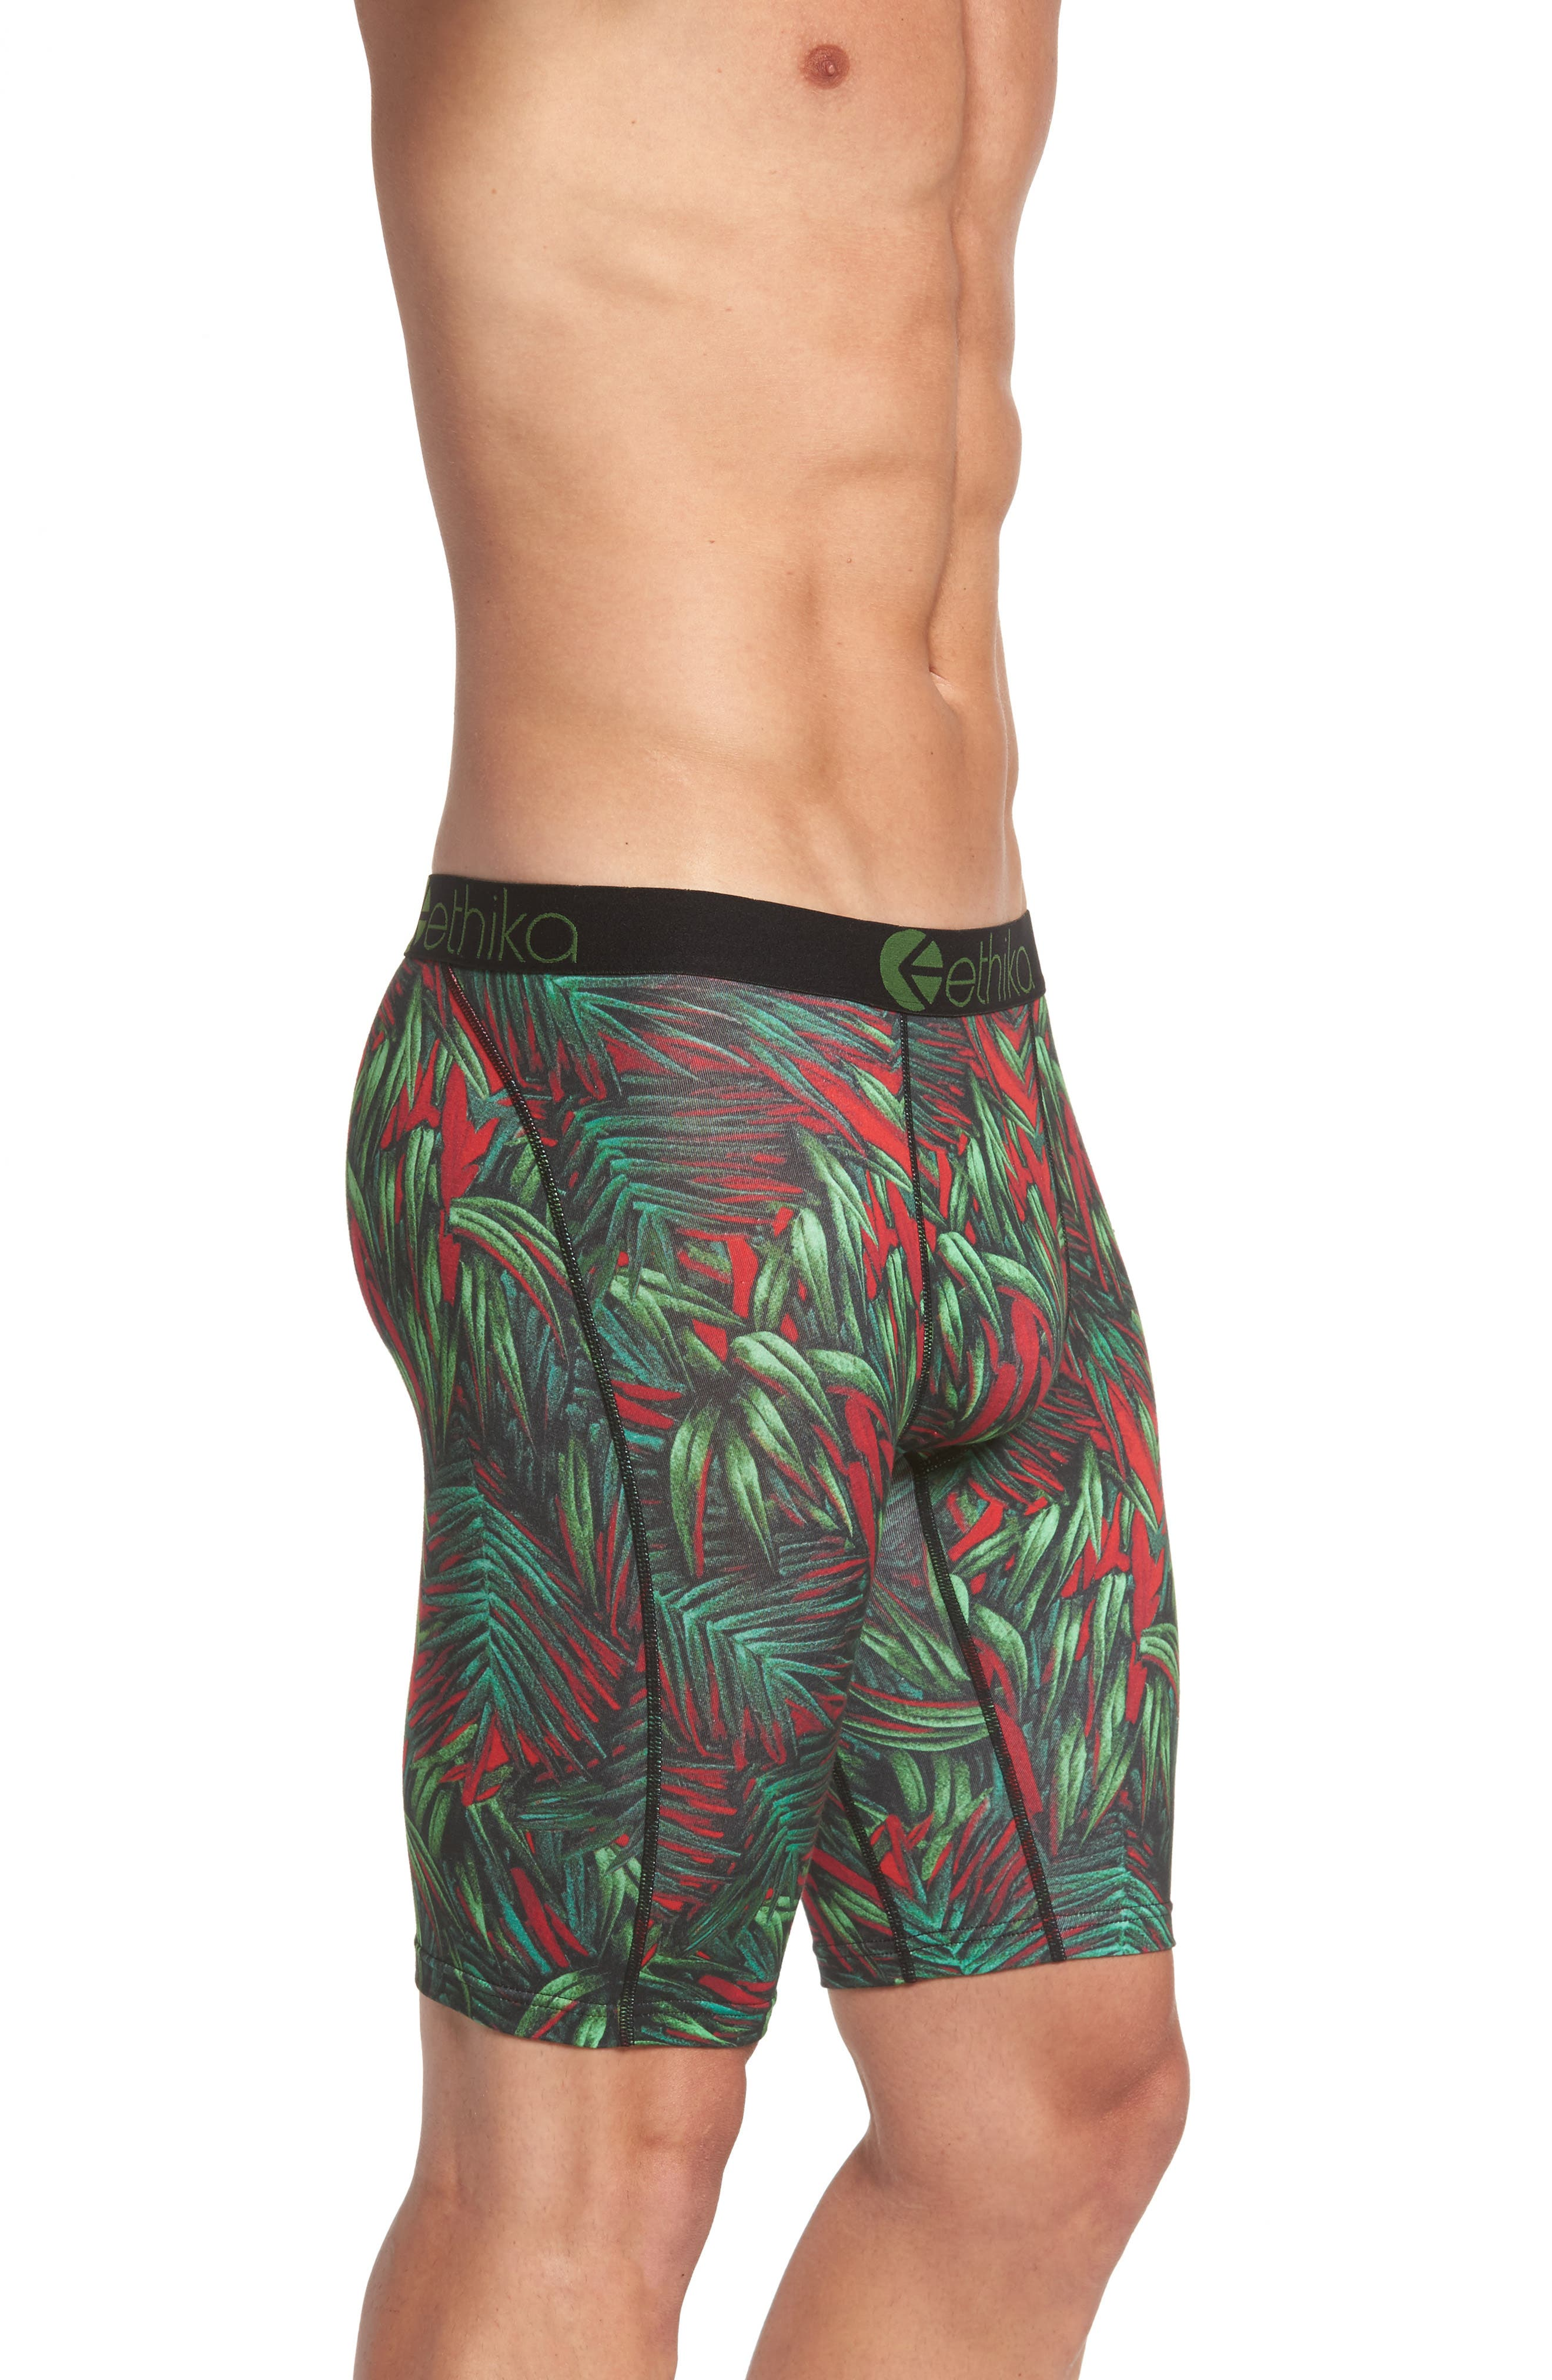 Electric Palms Boxer Briefs,                             Alternate thumbnail 3, color,                             Green/ Red